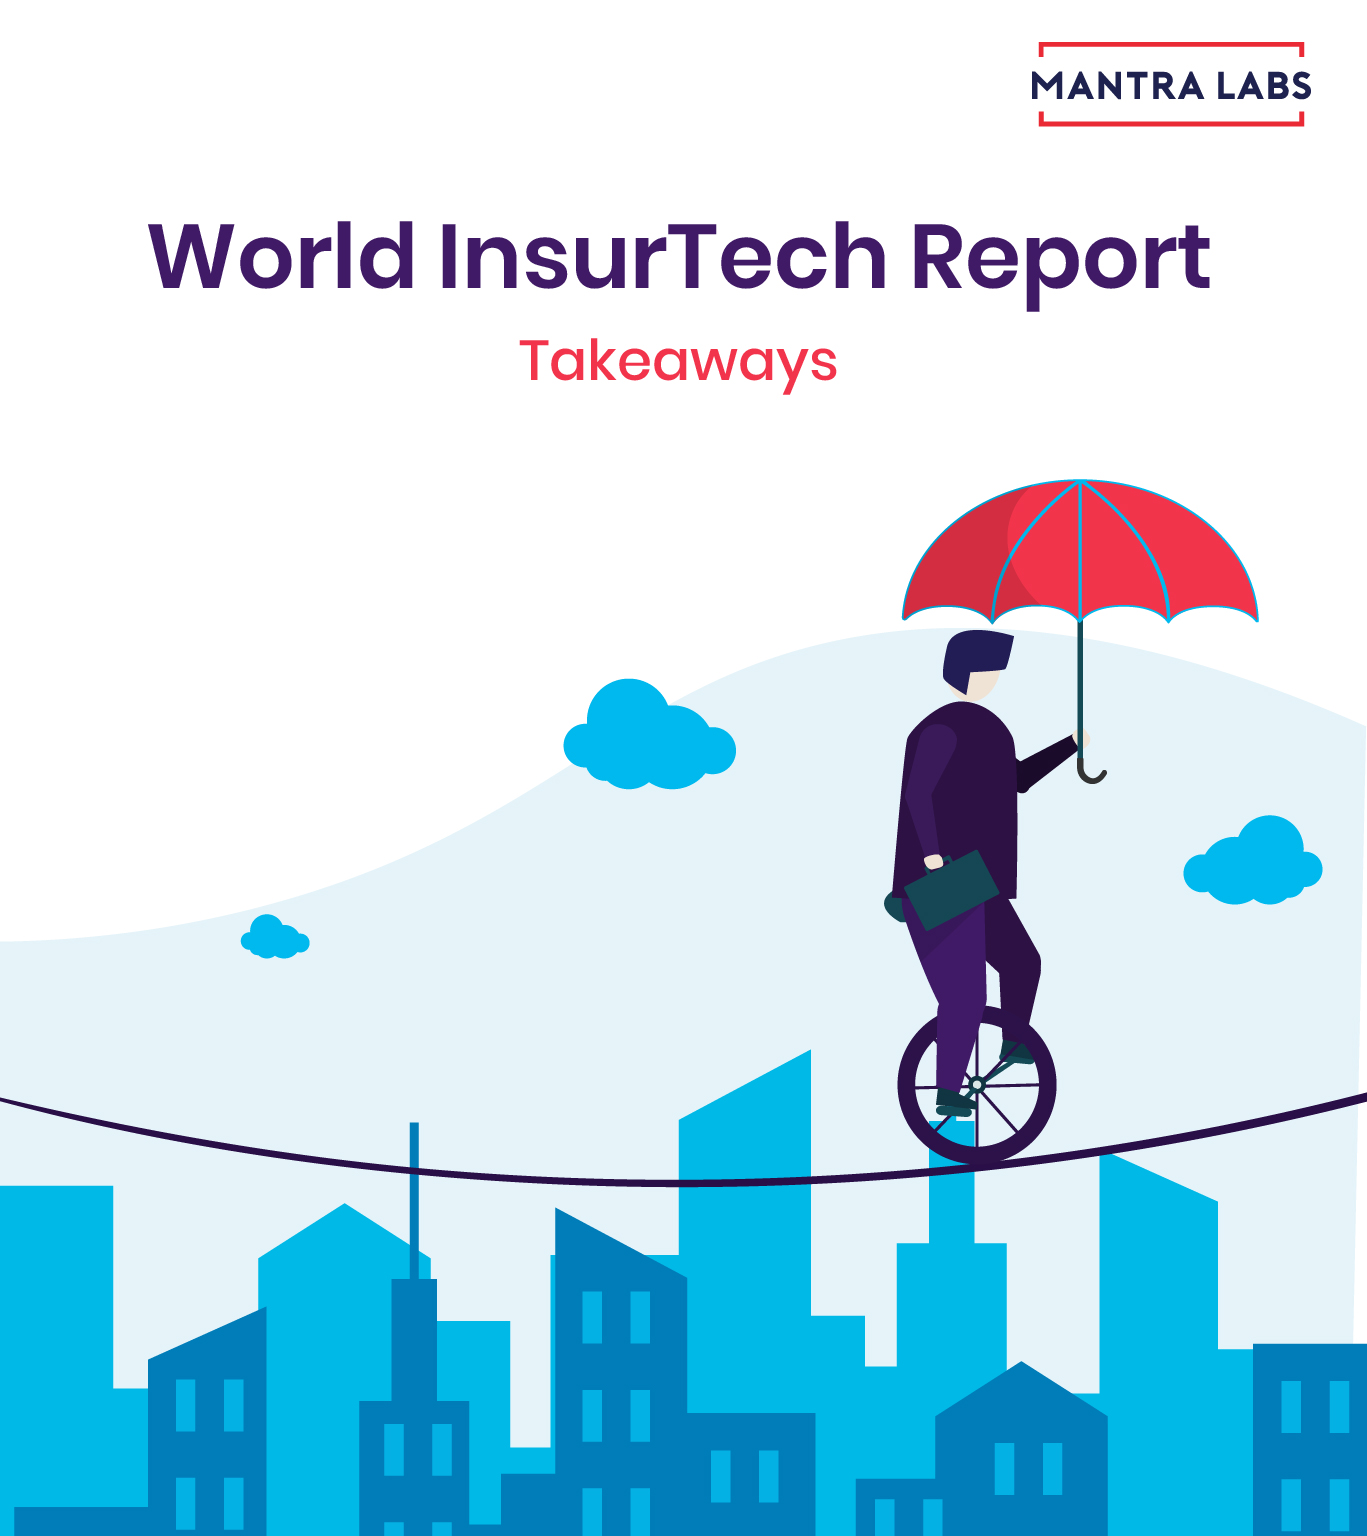 World Insurtech Report 2019 - Featured Image